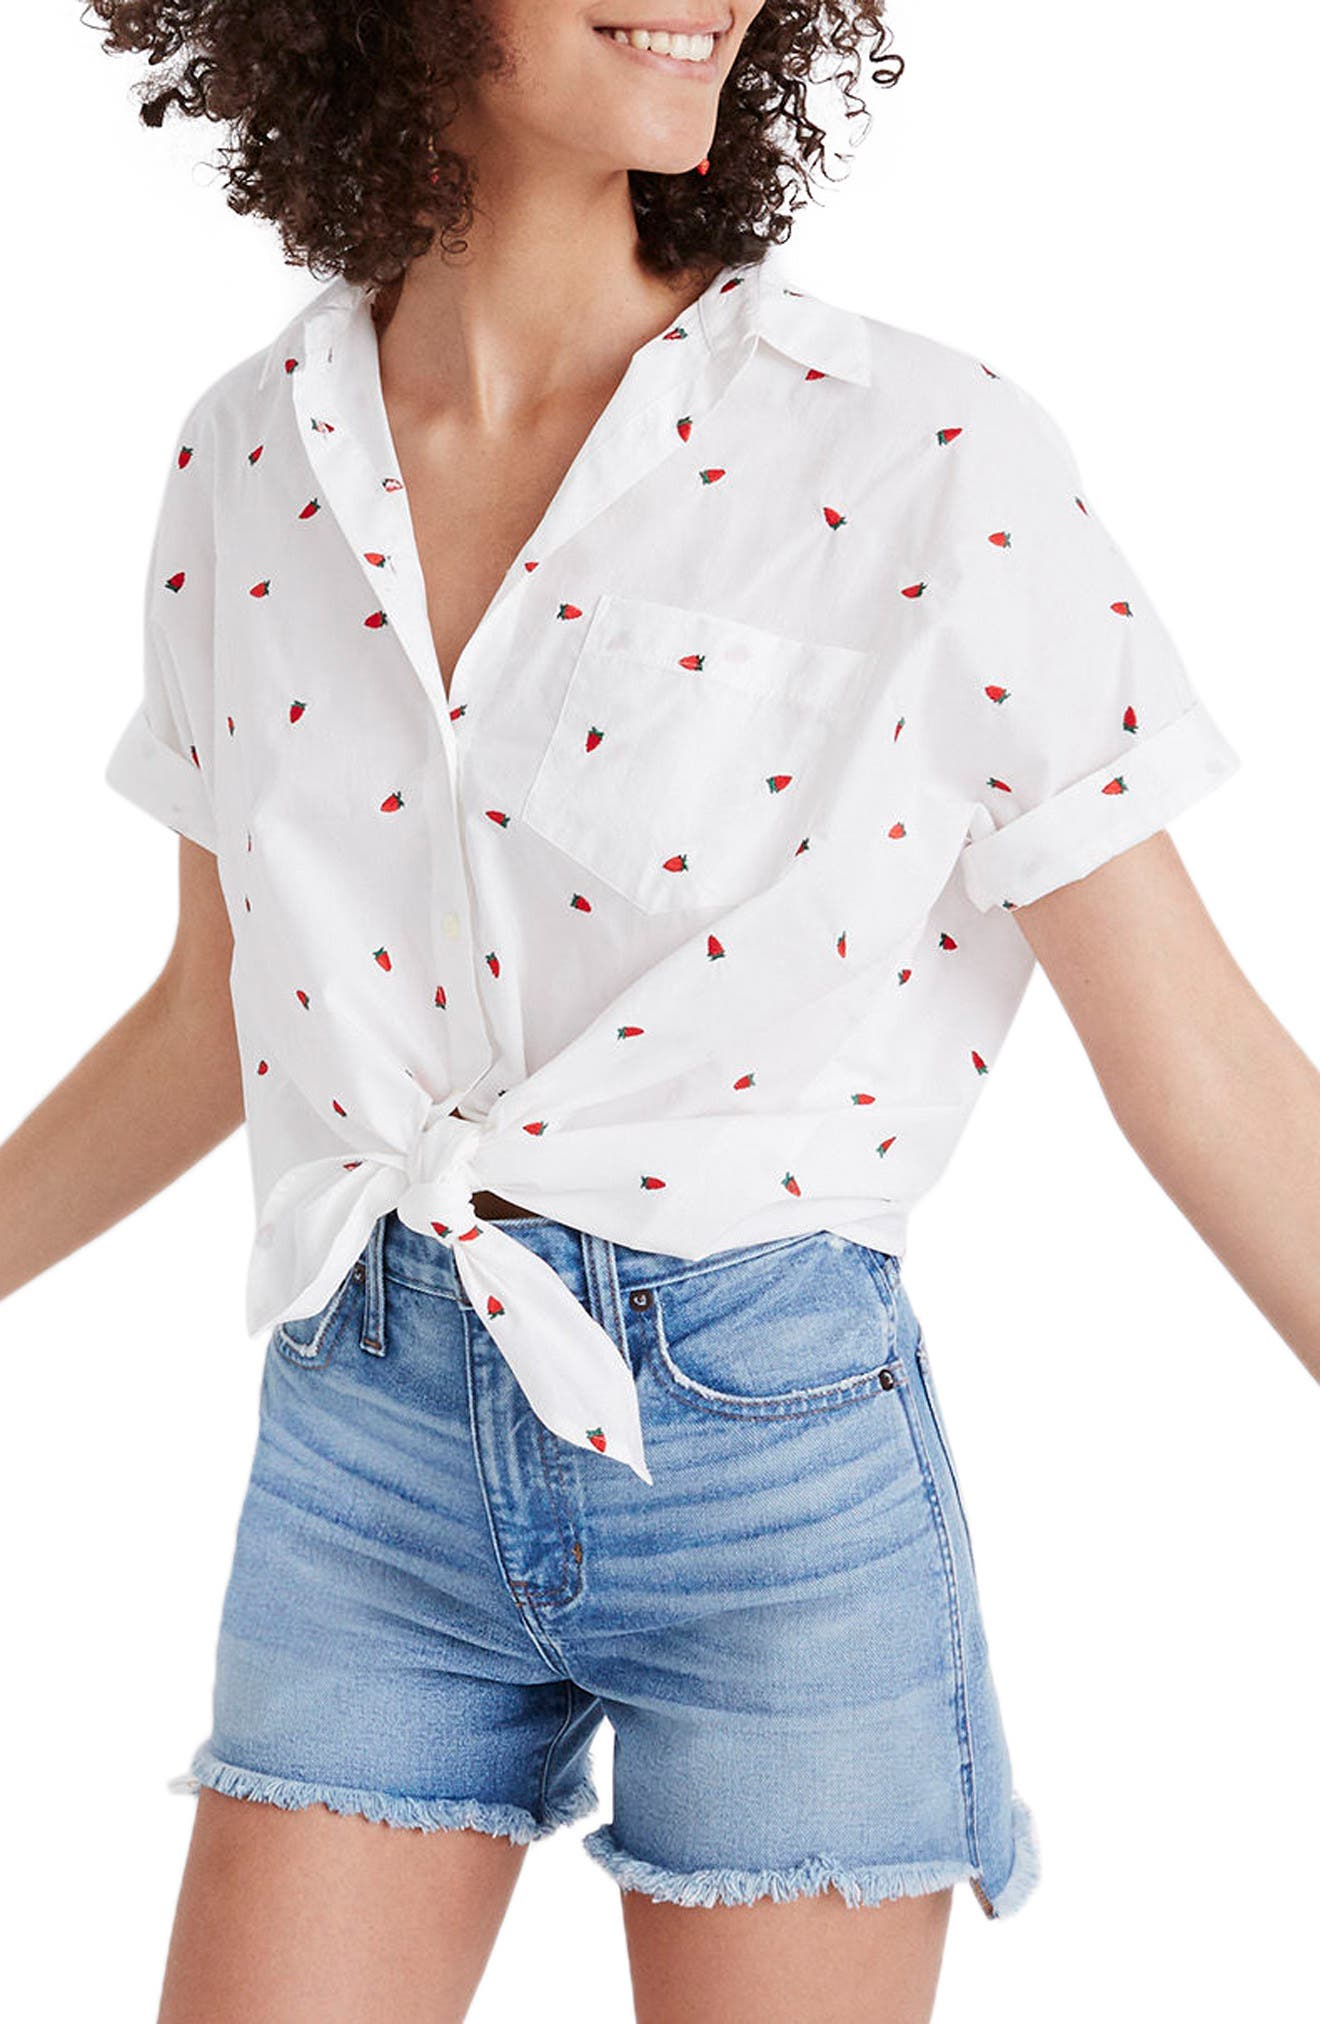 Strawberry Embroidered Tie Front Shirt,                         Main,                         color, Strawberry Critter White